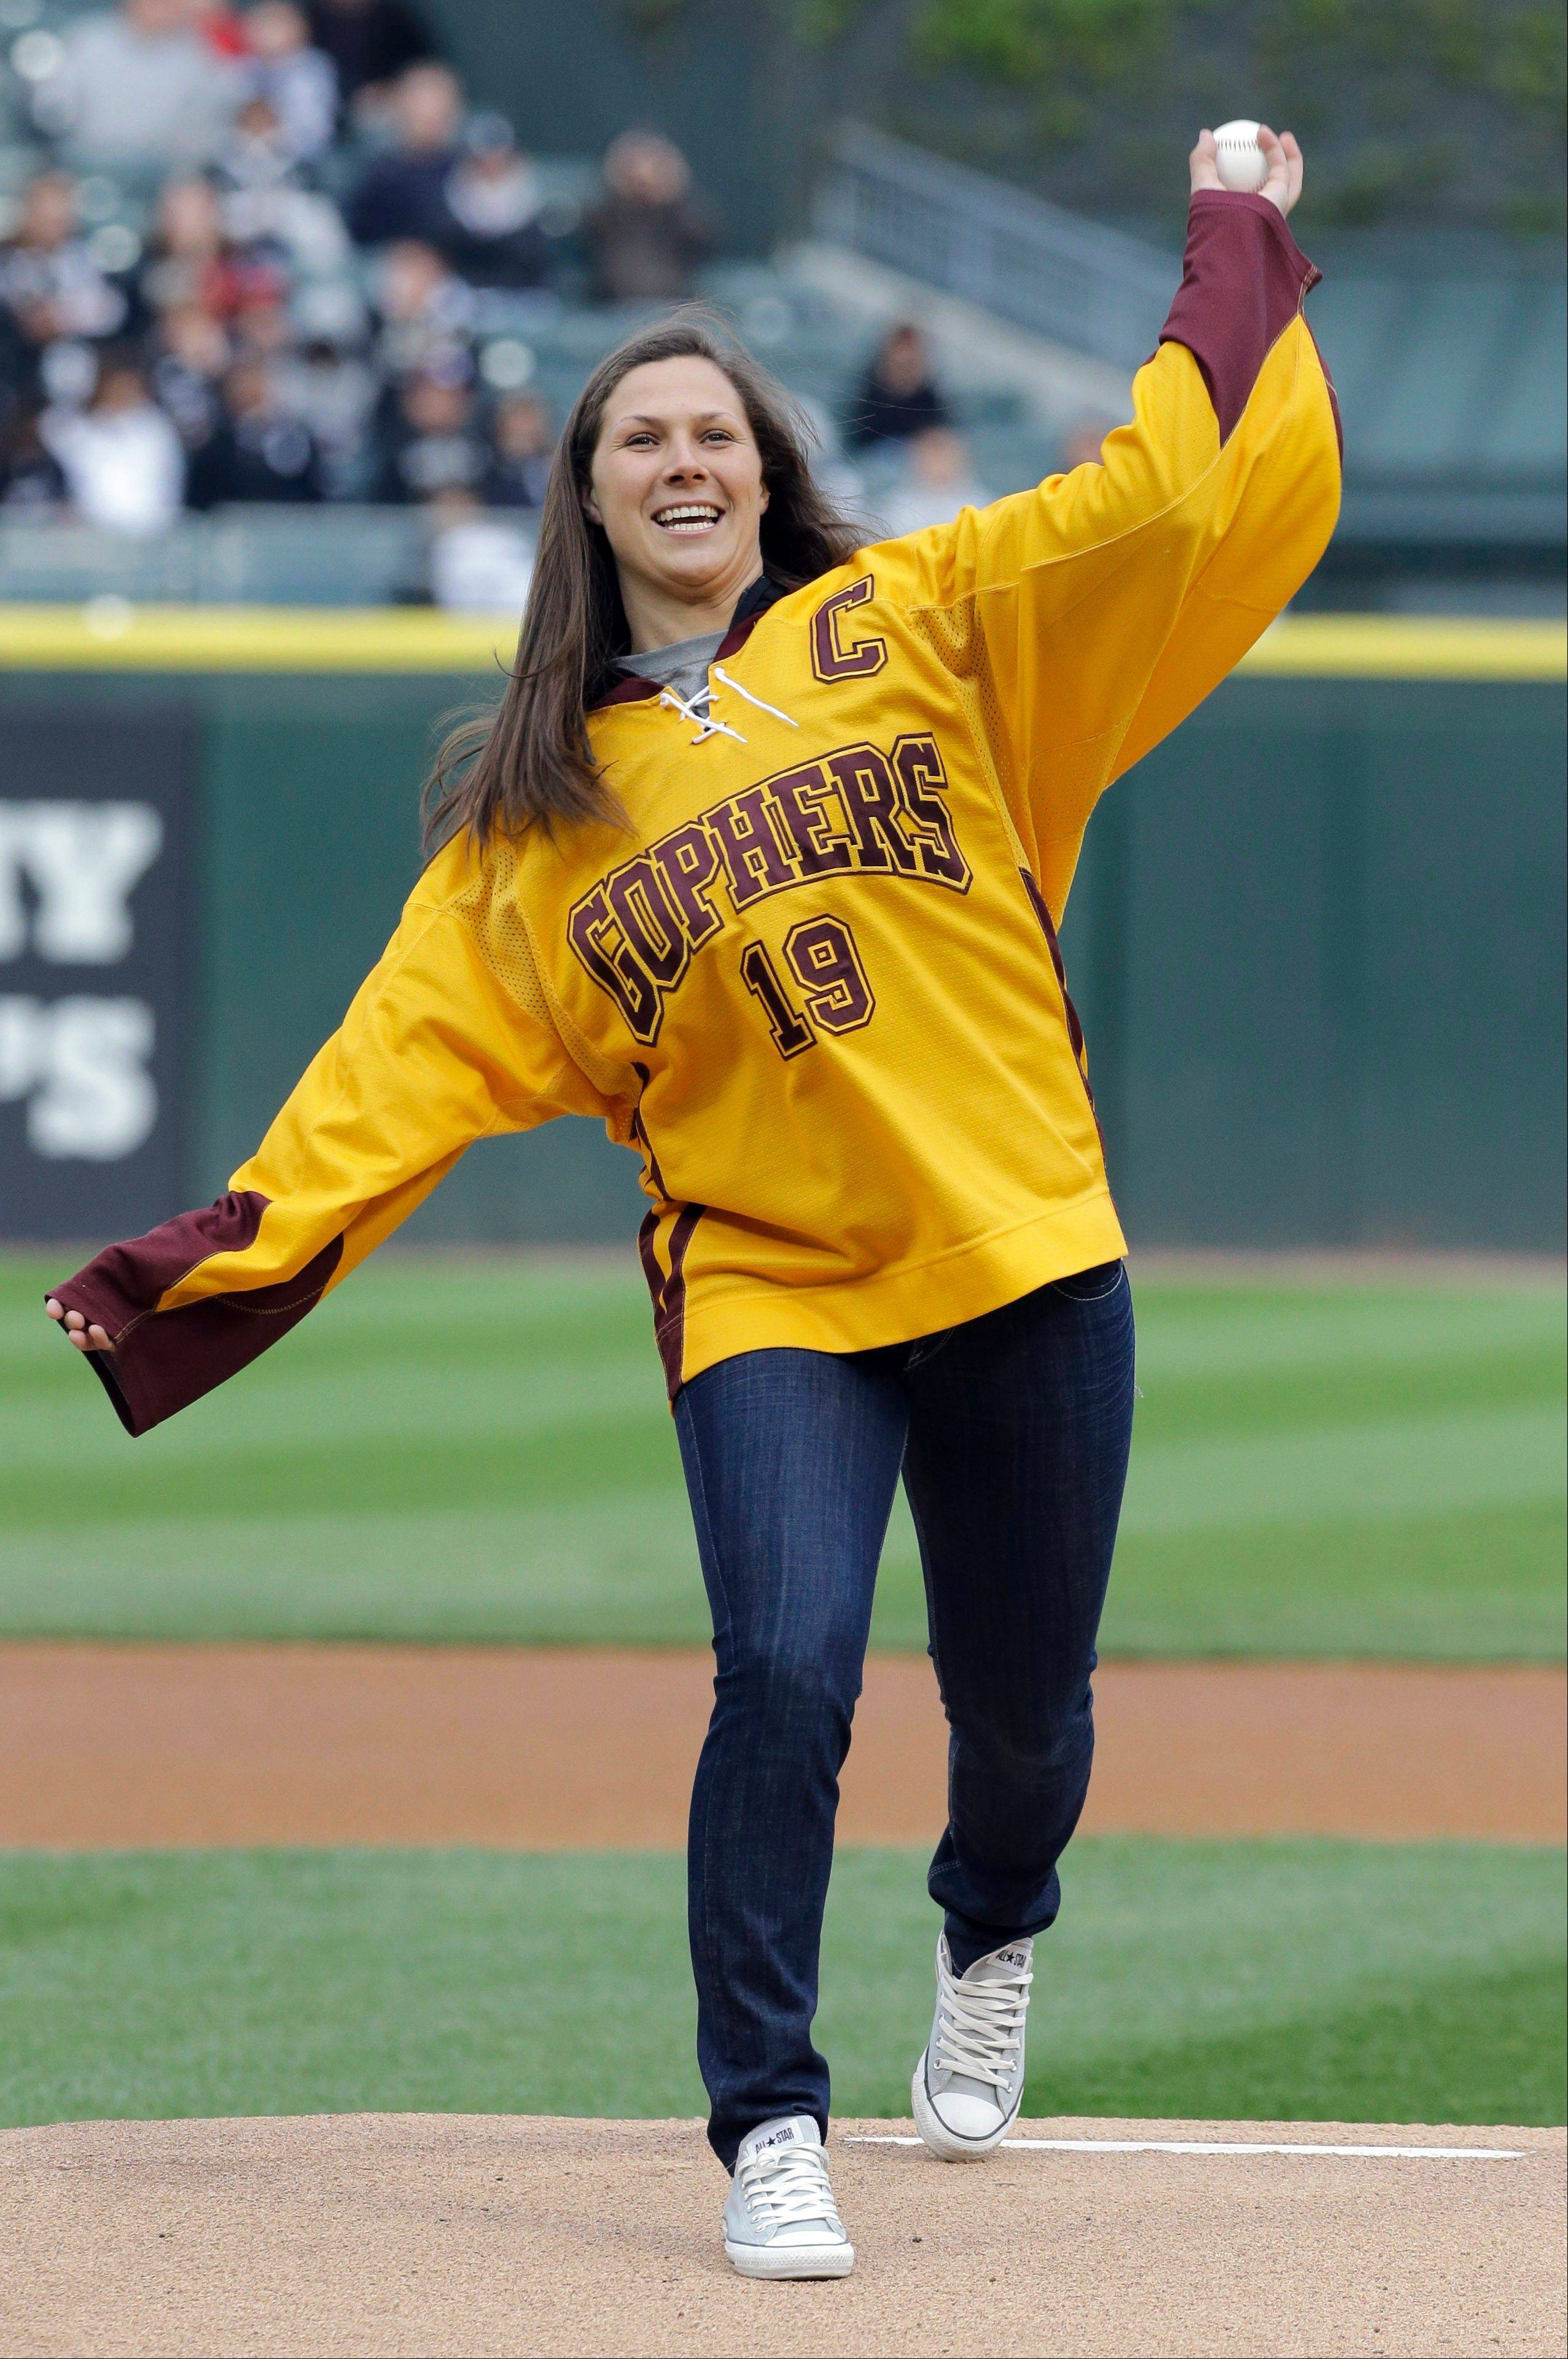 Former Minnesota women's hockey star Megan Bozek threw out a ceremonial first pitch before a baseball game between the Los Angeles Angels and the Chicago White Sox in Chicago last May. Next month she'll play for Team USA in Sochi, Russia.